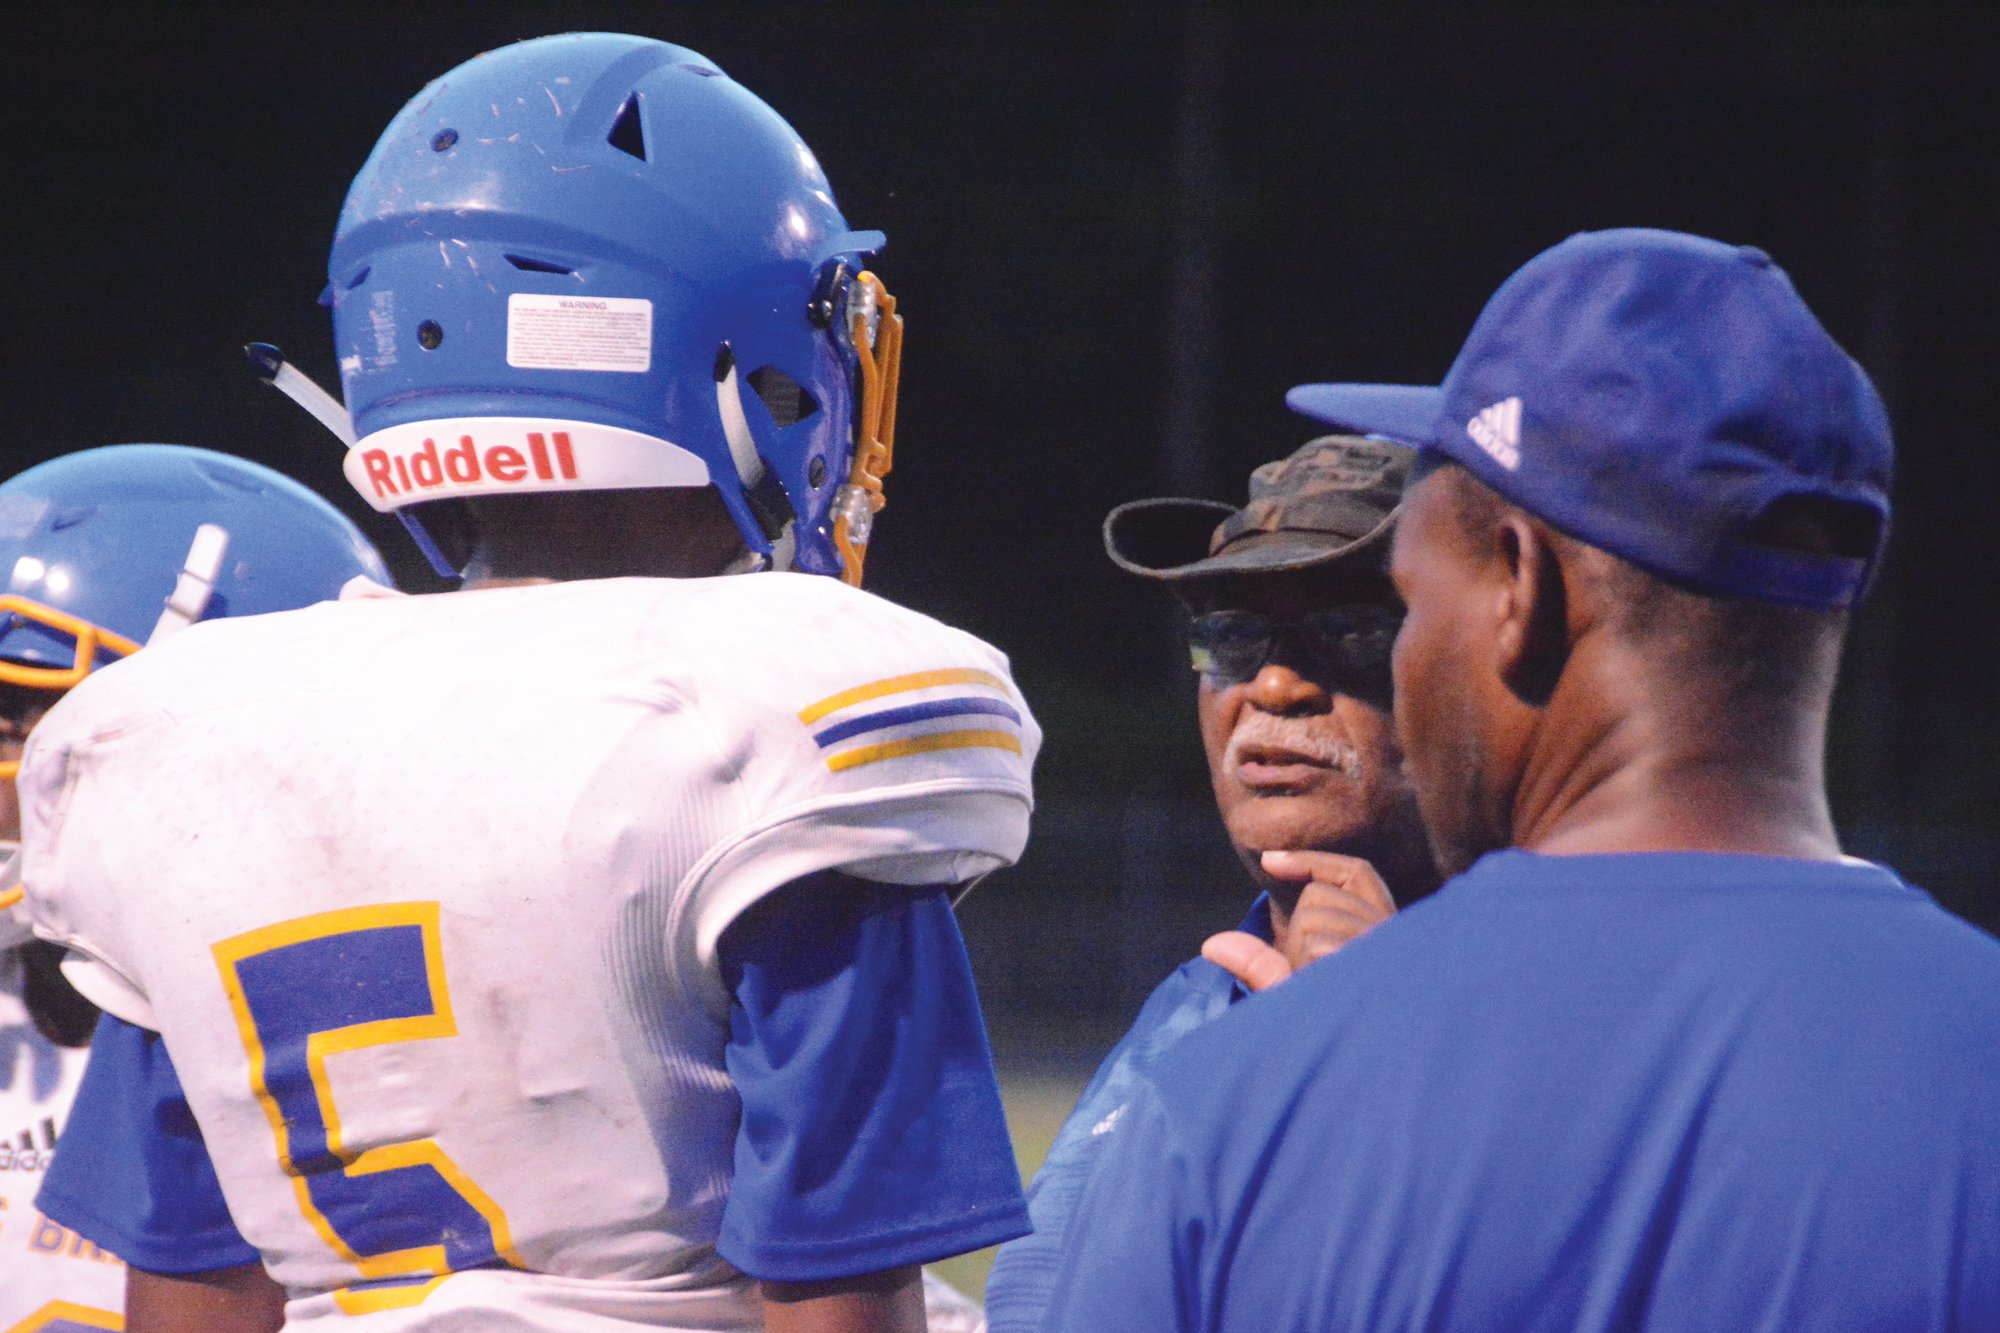 Scott's Branch head coach Leonard Johnson, center, will lead the Eagles against winless Hemingway in the first round of the SCHSL A playoffs on Friday.